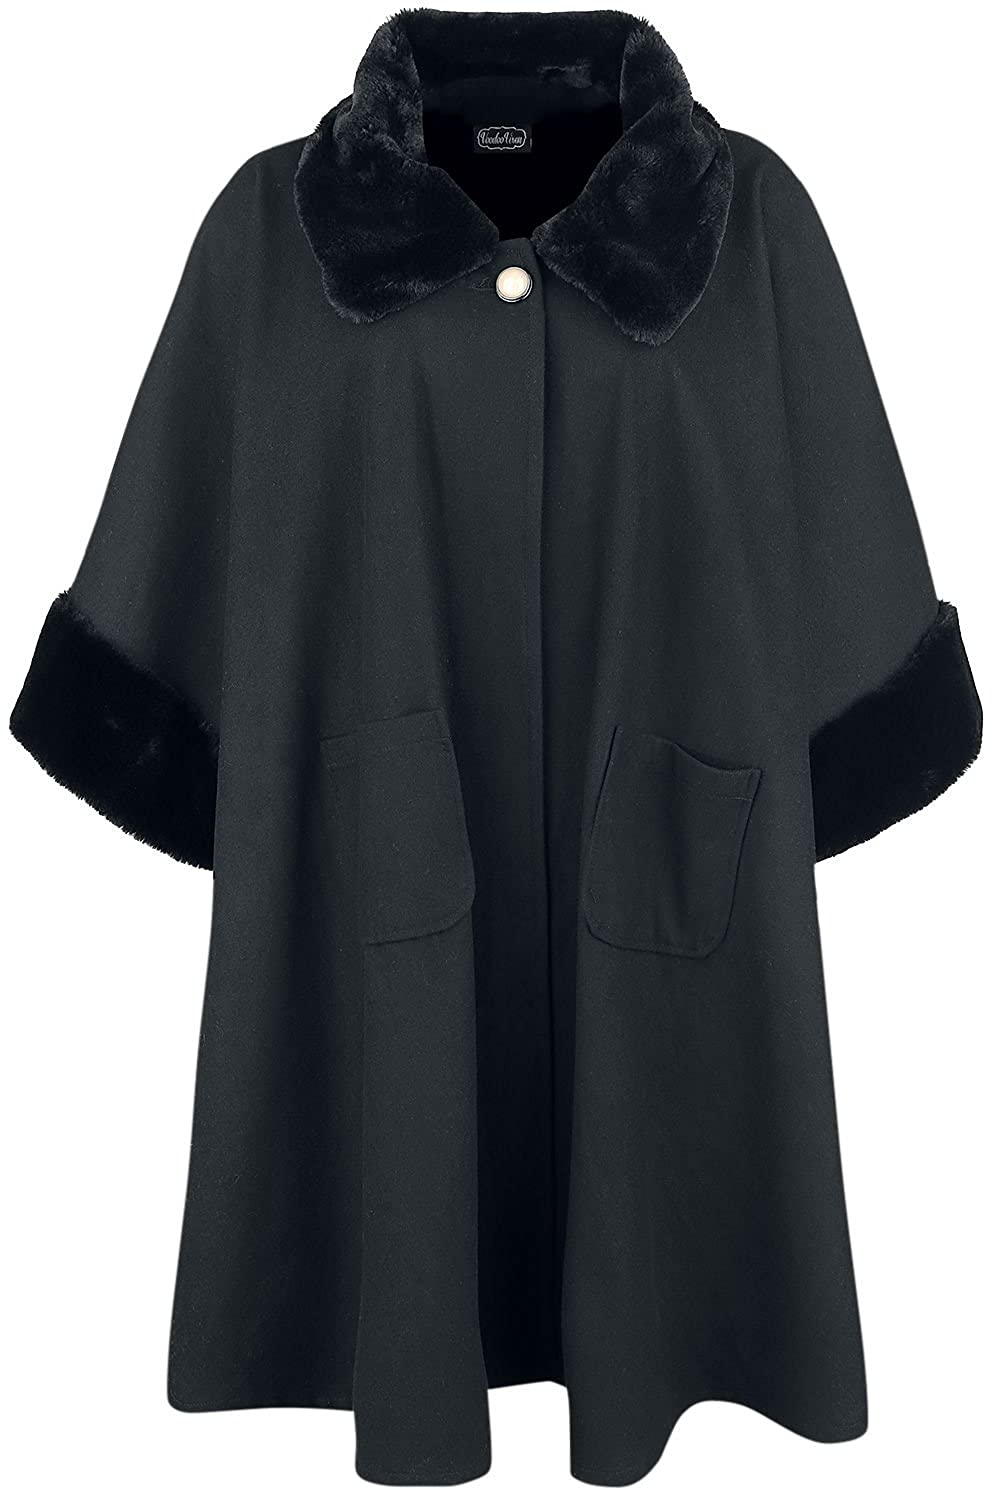 1950s Jackets, Coats, Bolero | Swing, Pin Up, Rockabilly Voodoo Vixen Womens Melrose Faux Fur Cape (Black) $63.84 AT vintagedancer.com